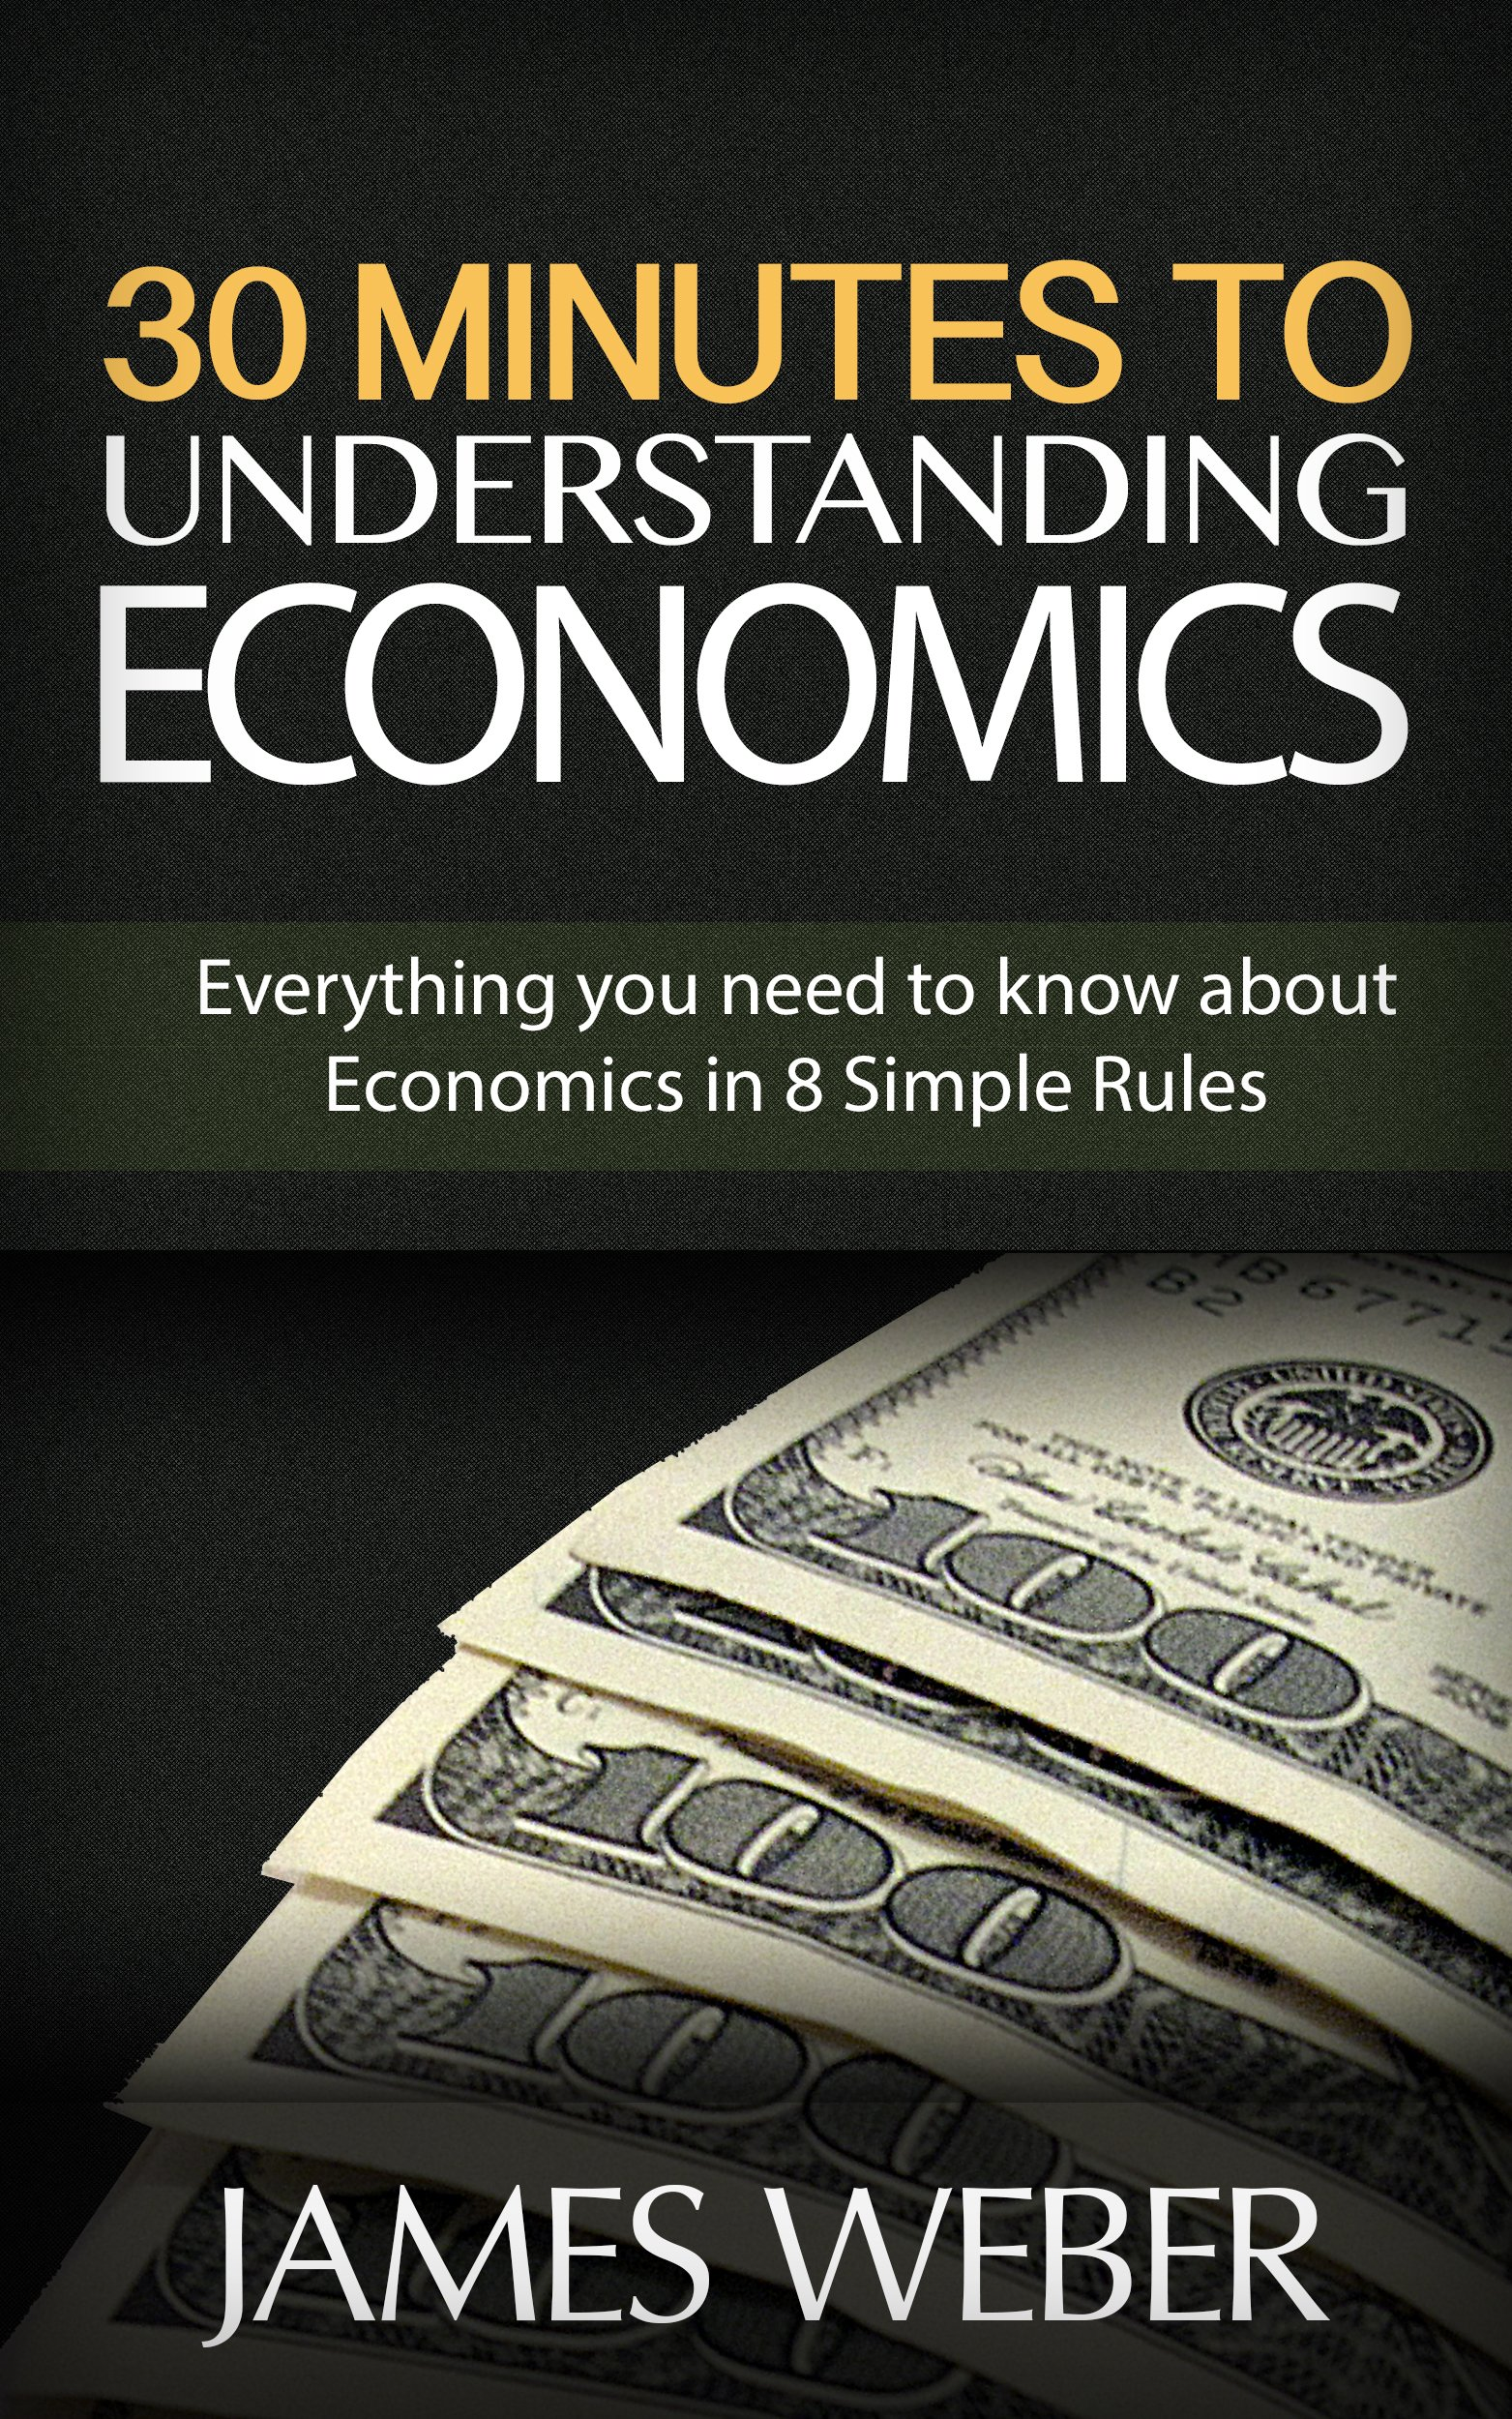 Economics: The 30 Minutes Guide to Understanding Economics: Everything you need to know about Economics in 8 Simple Rules (Understanding Economics, Economics Book, Economics Explained)